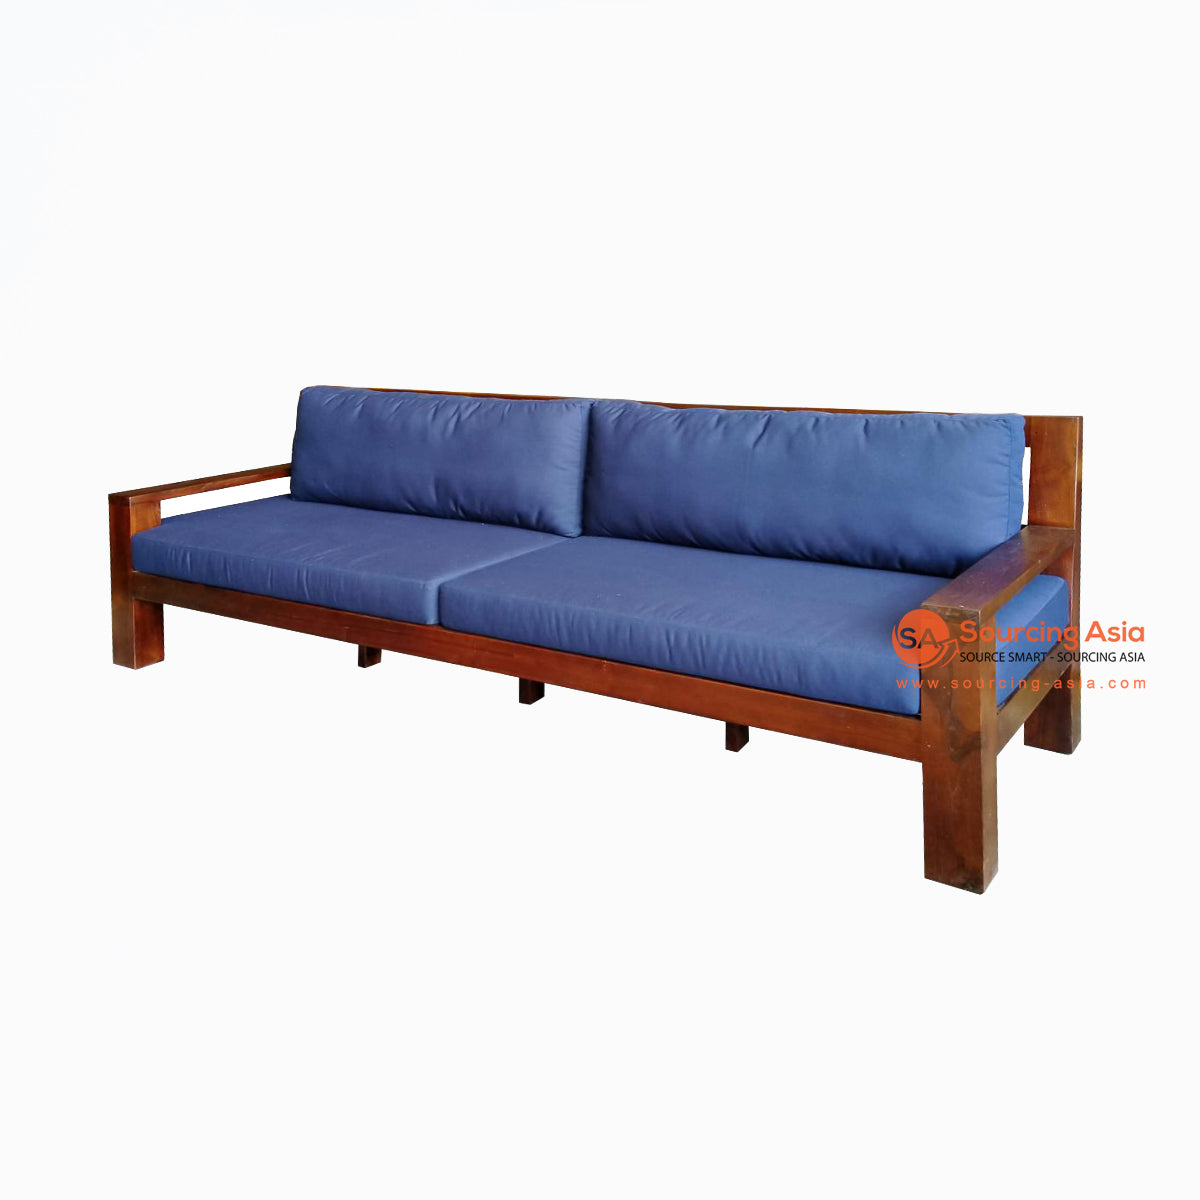 ECL048-240SP BROWN RECYCLED TEAK WOOD TWO SEATS SOFA WITH CUSHION